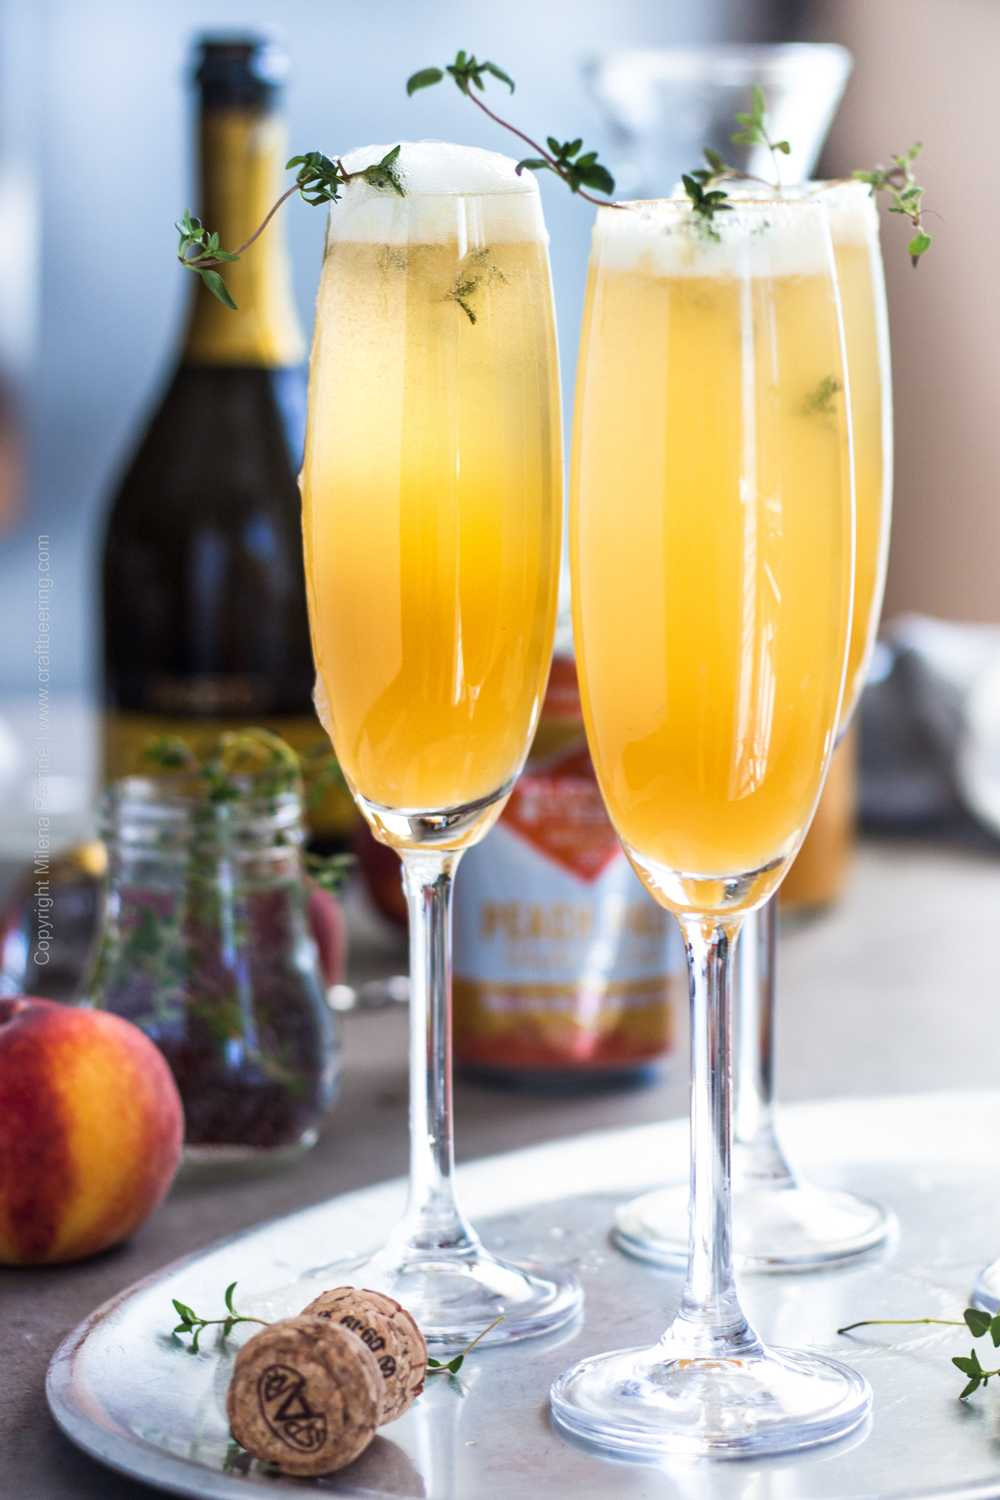 Peach Bellini Drink made with fresh peach puree, peach ale and prosecco